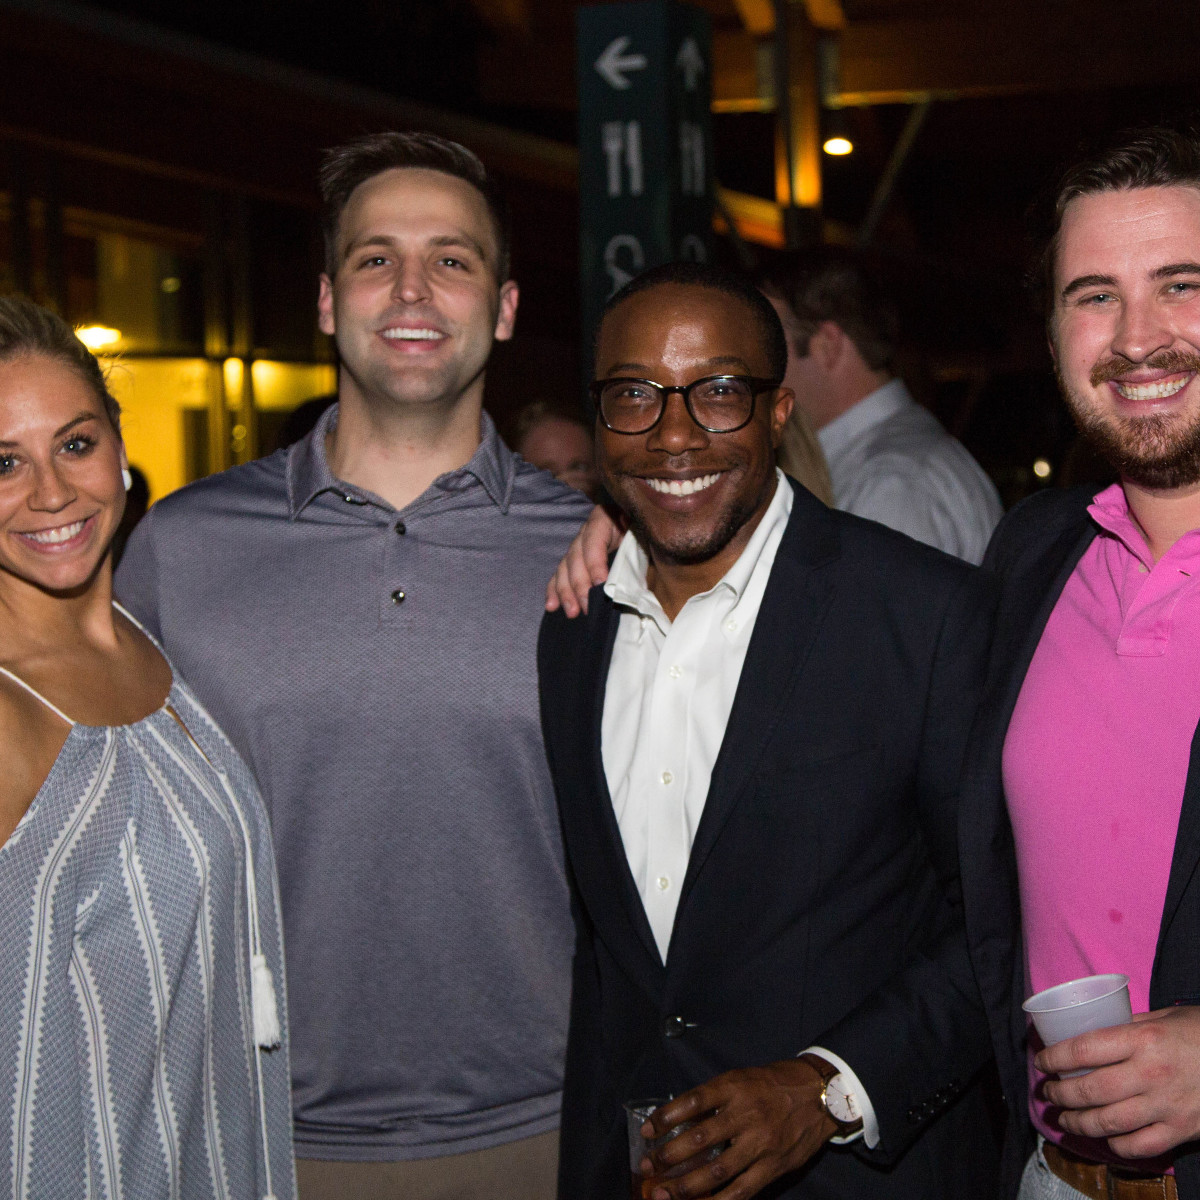 Courtney Rosen, John Kovach, Arthur Bryan II, Andrew Scheller at Urban Green Overboard party